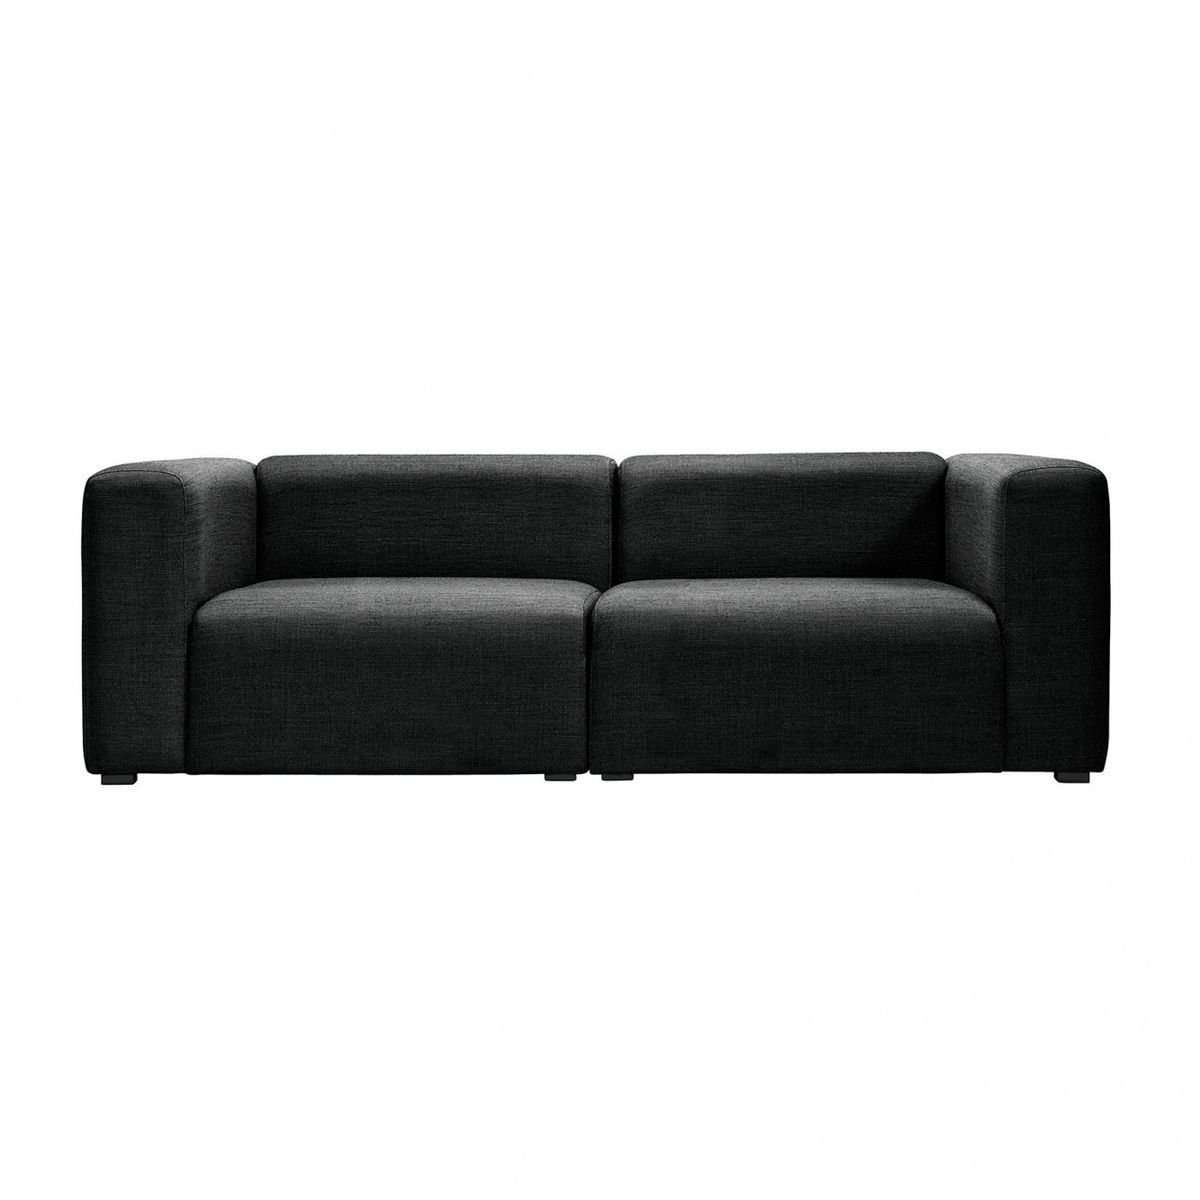 mags 2 5 seater sofa fabric surface hay. Black Bedroom Furniture Sets. Home Design Ideas